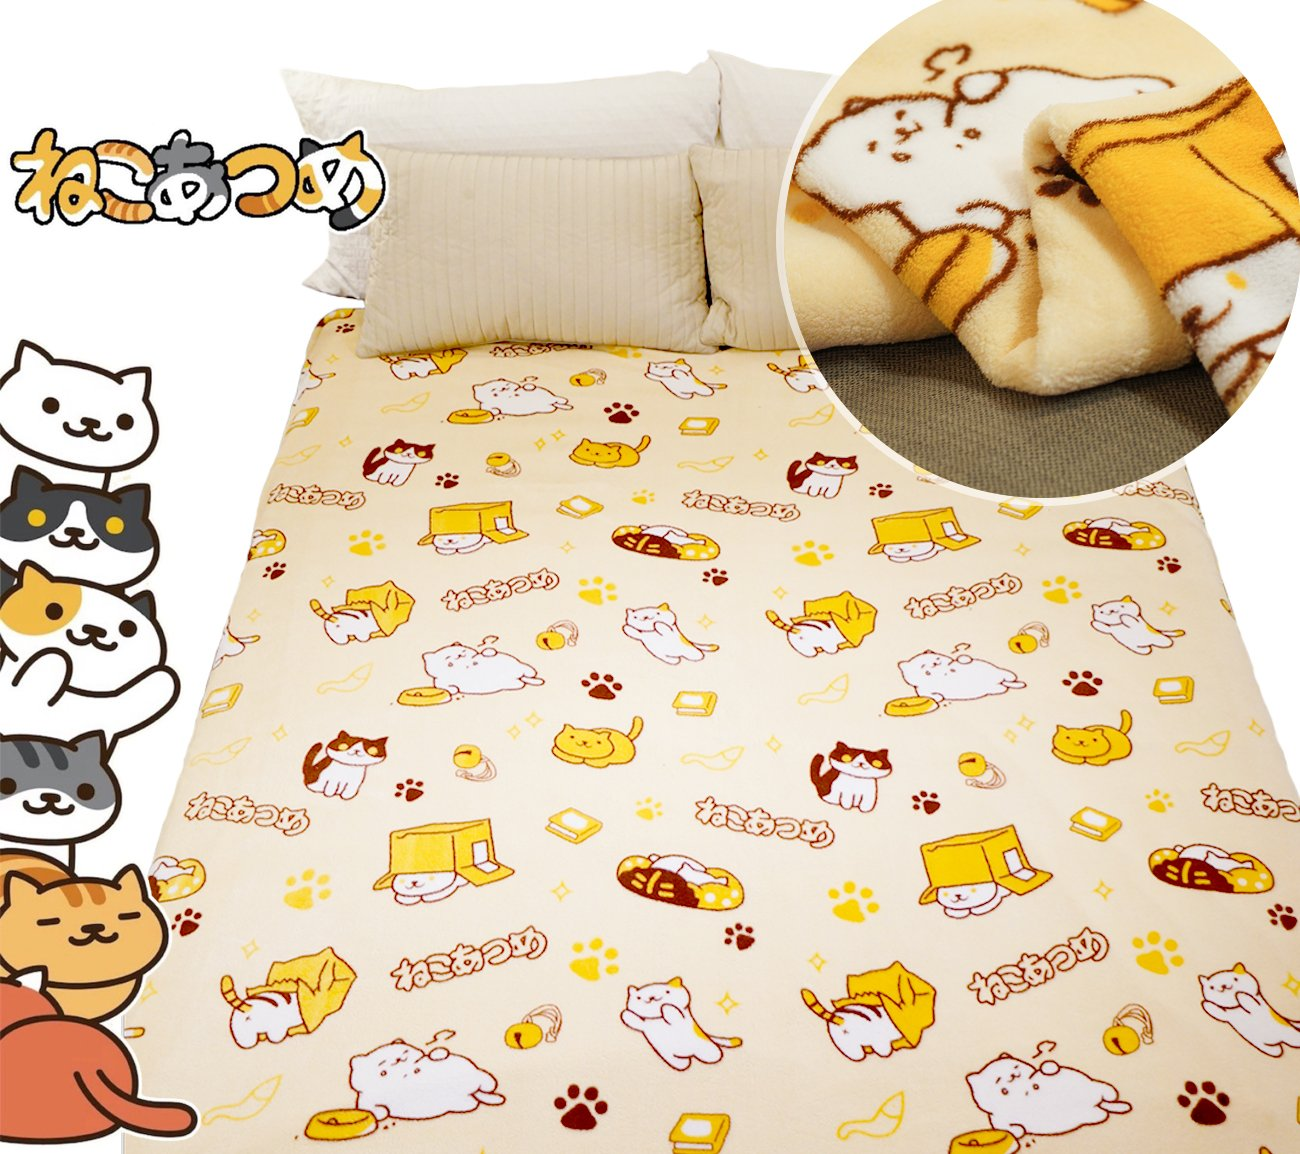 Sunny Bear Neko Atsume Cat Print Soft Throw Blanket for Kids Adults Couch Bed,Janpanese Game Cat Pattern Blanket 59'' x 79'' (L)